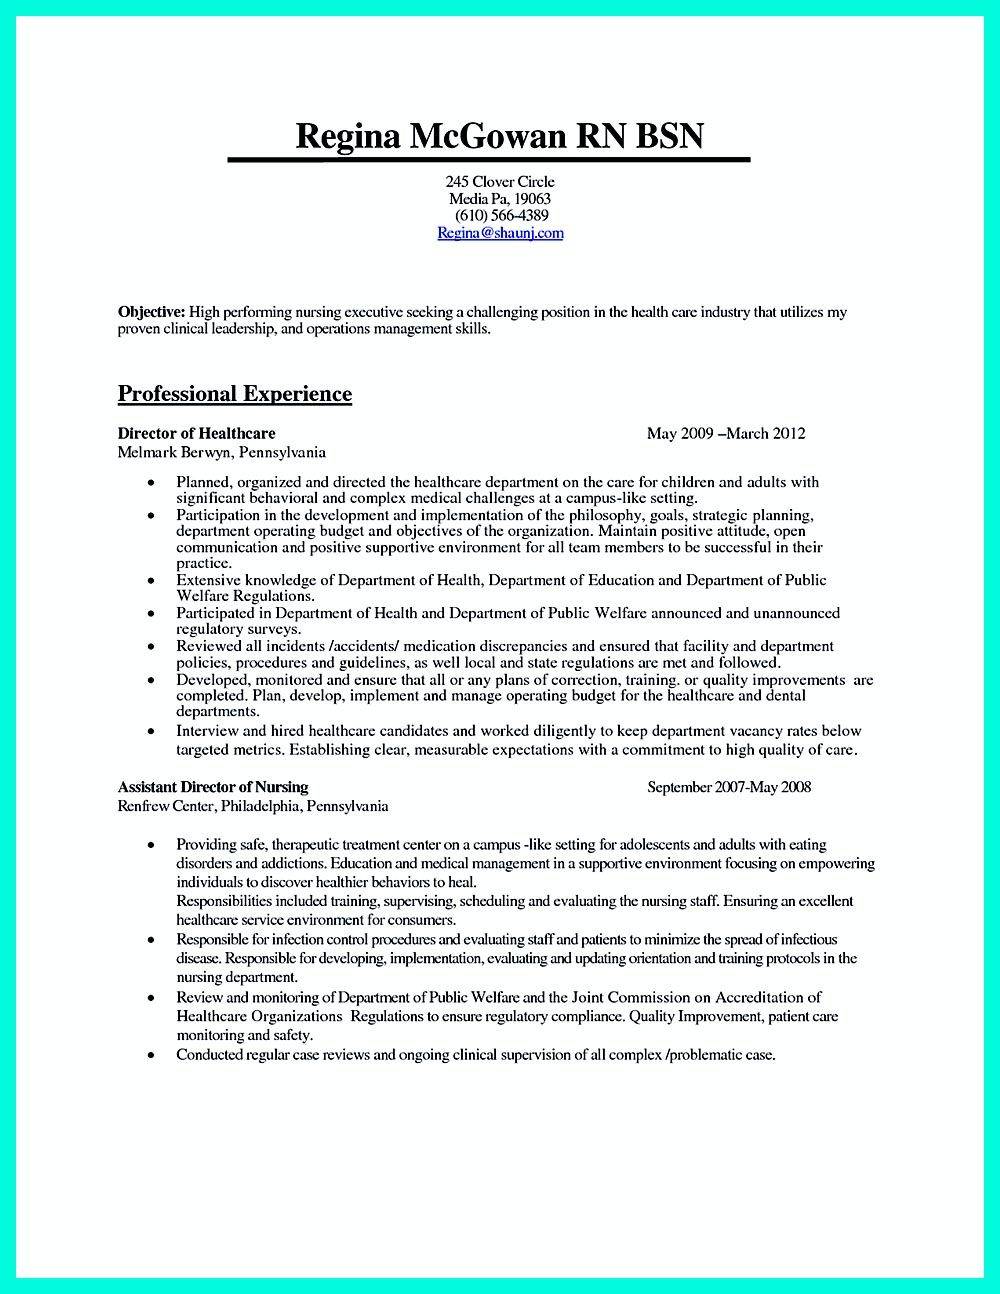 Some Samples Of Crna Resume Here Are Useful For You Who Want To